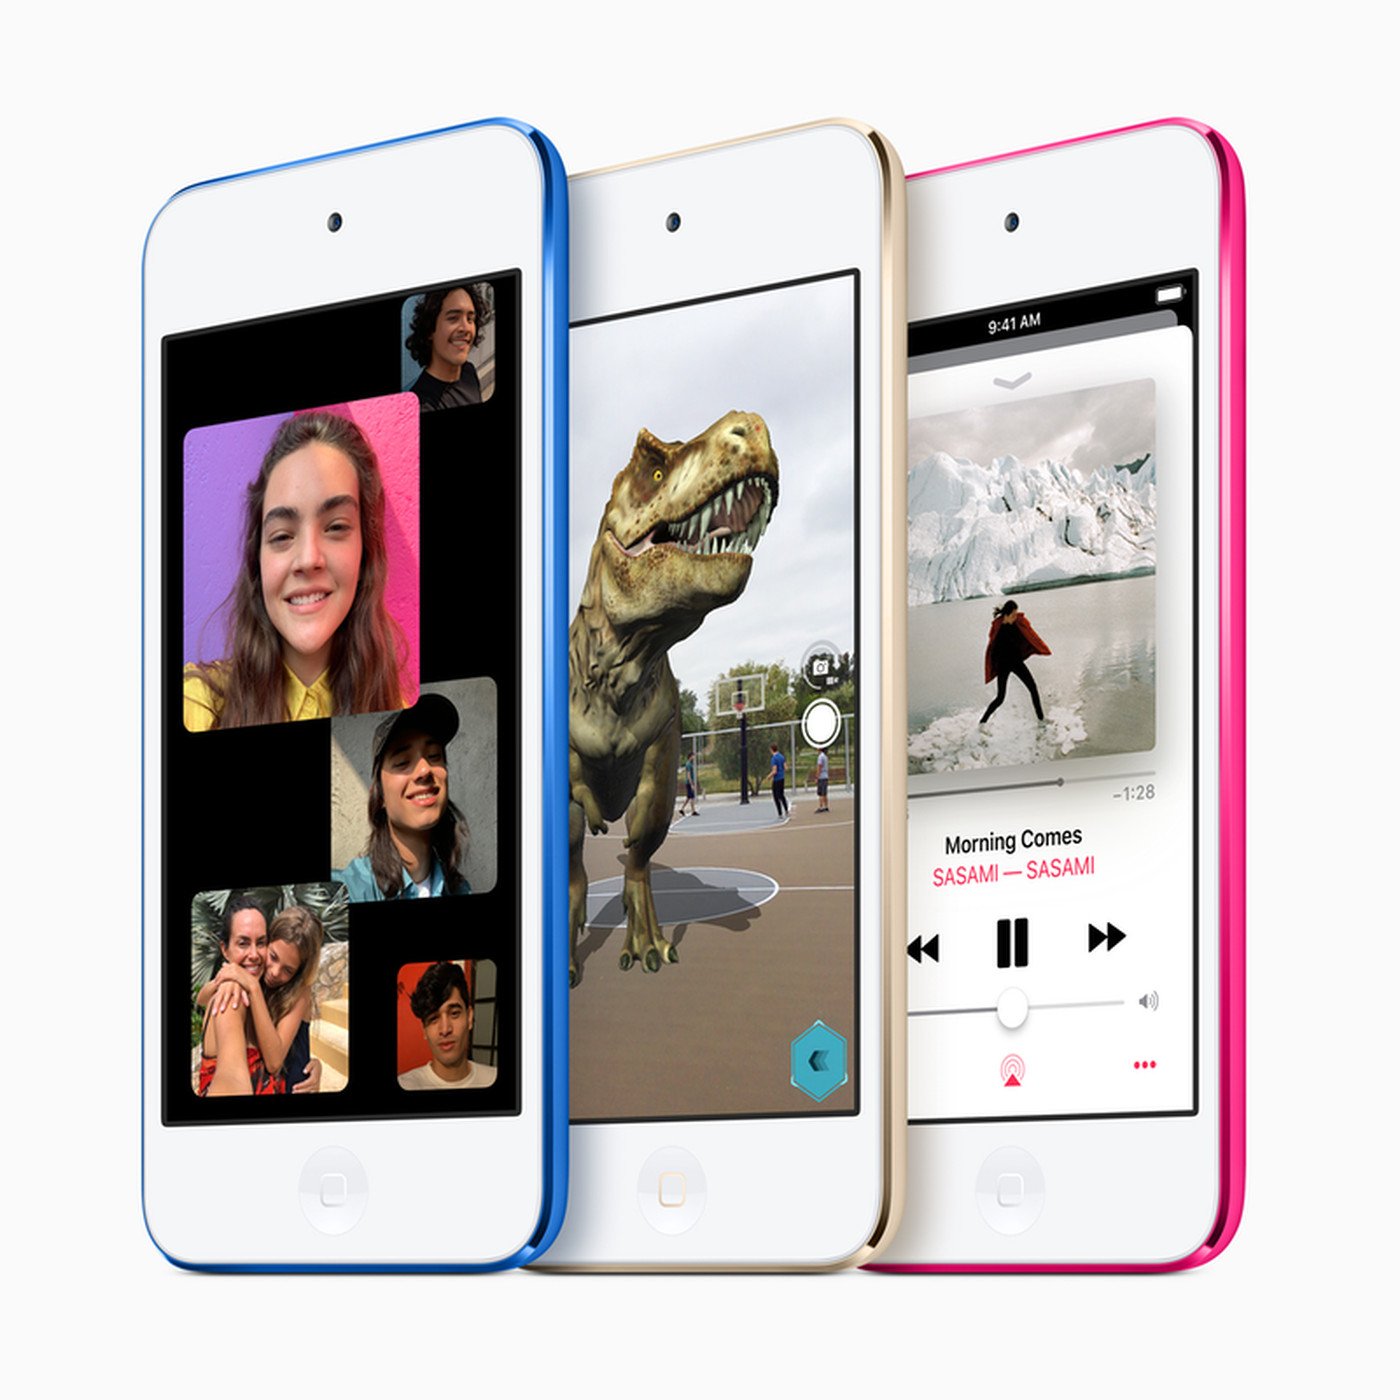 Apple refreshes the iPod touch with the iPhone 7's processor - The ...